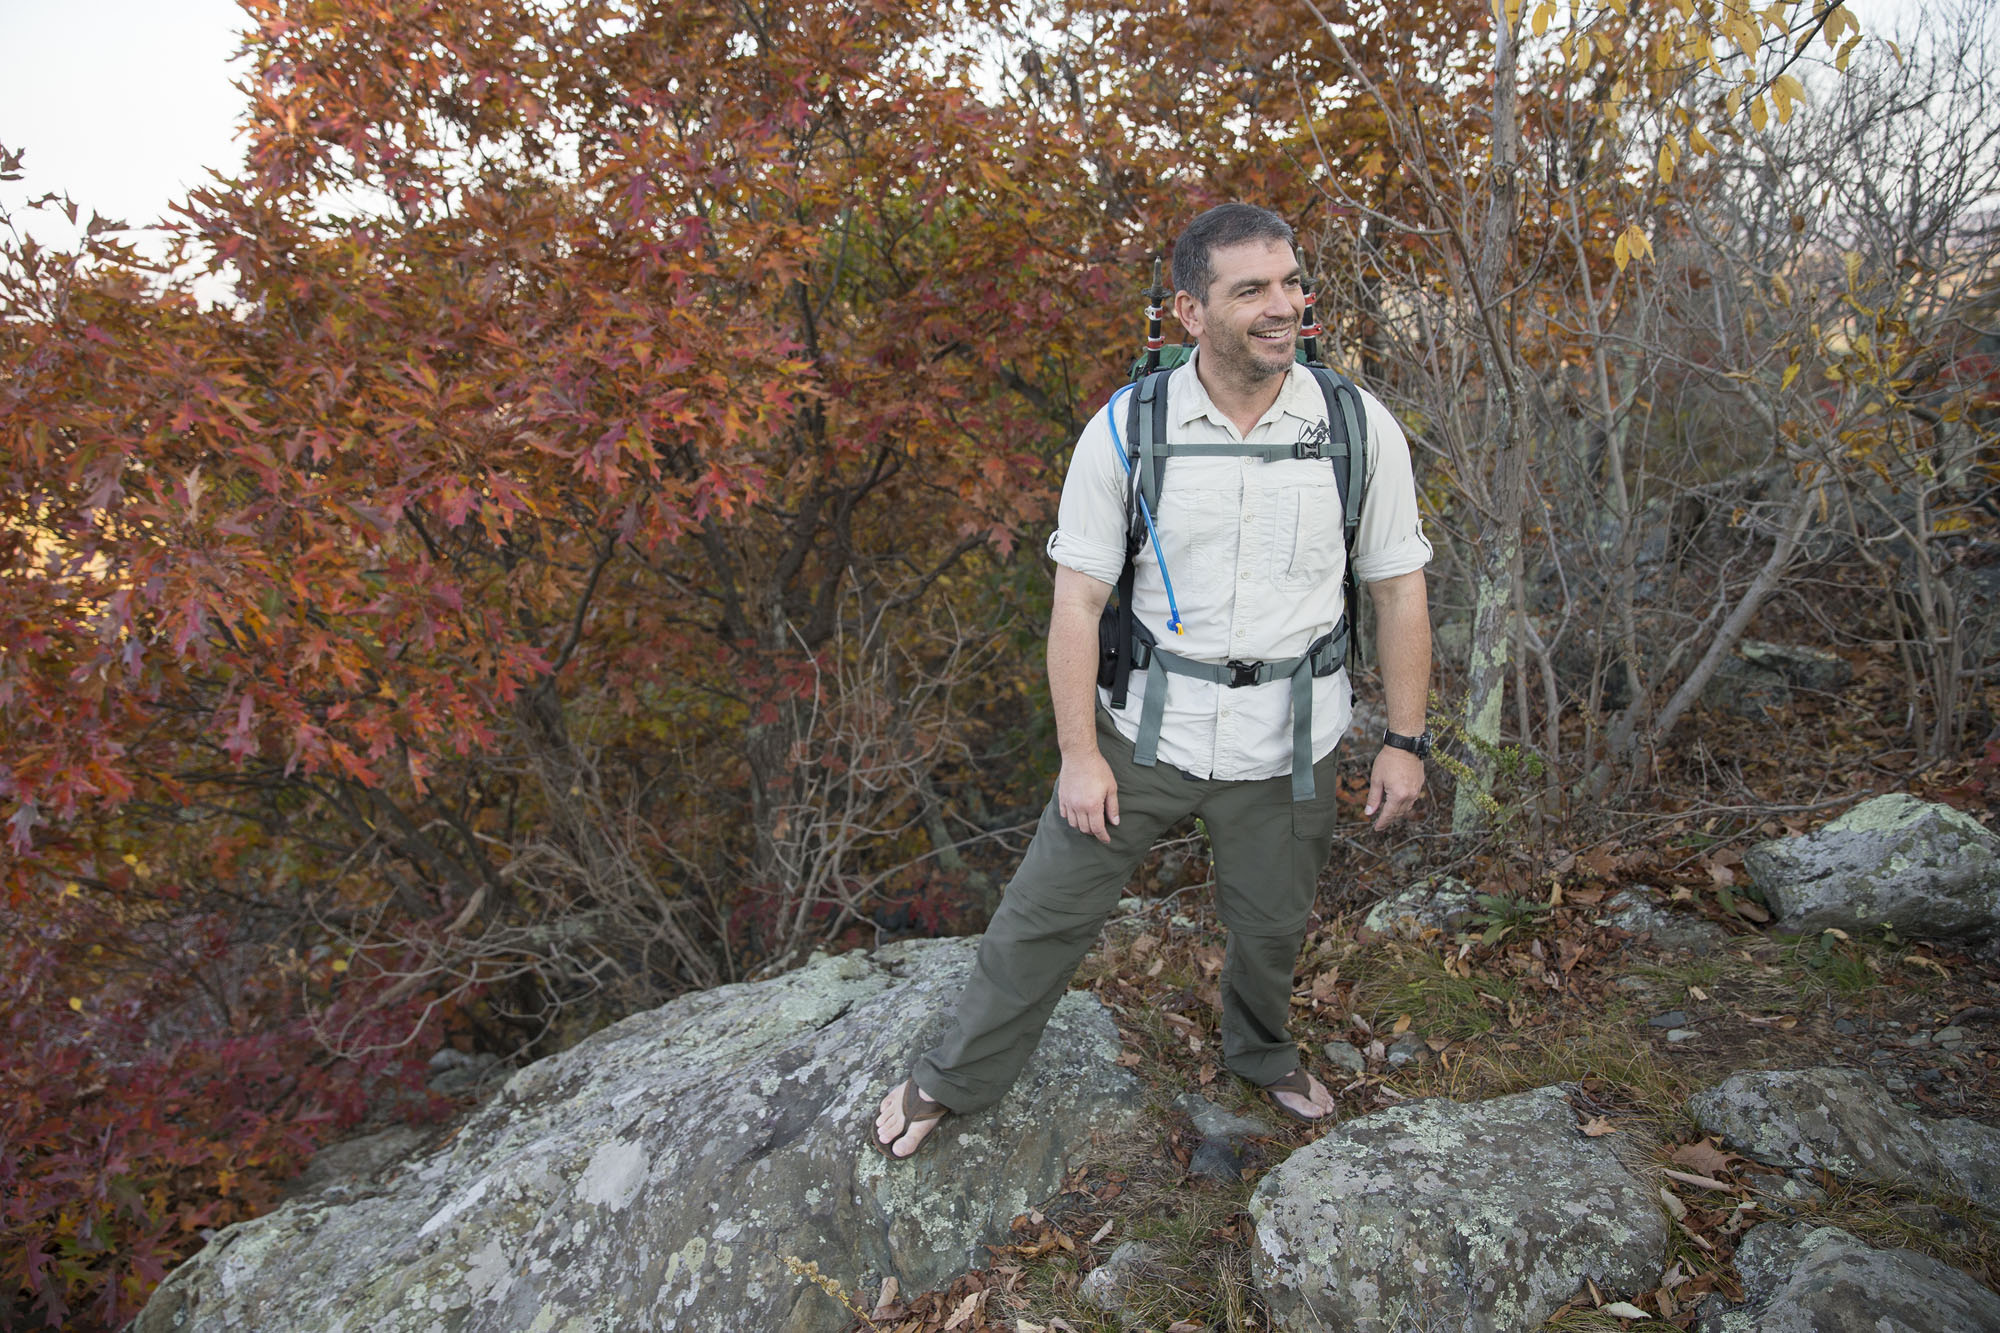 Darden graduate Sean Gobin discovered the healing power of hiking firsthand and has dedicated his business to giving other veterans the same experience.